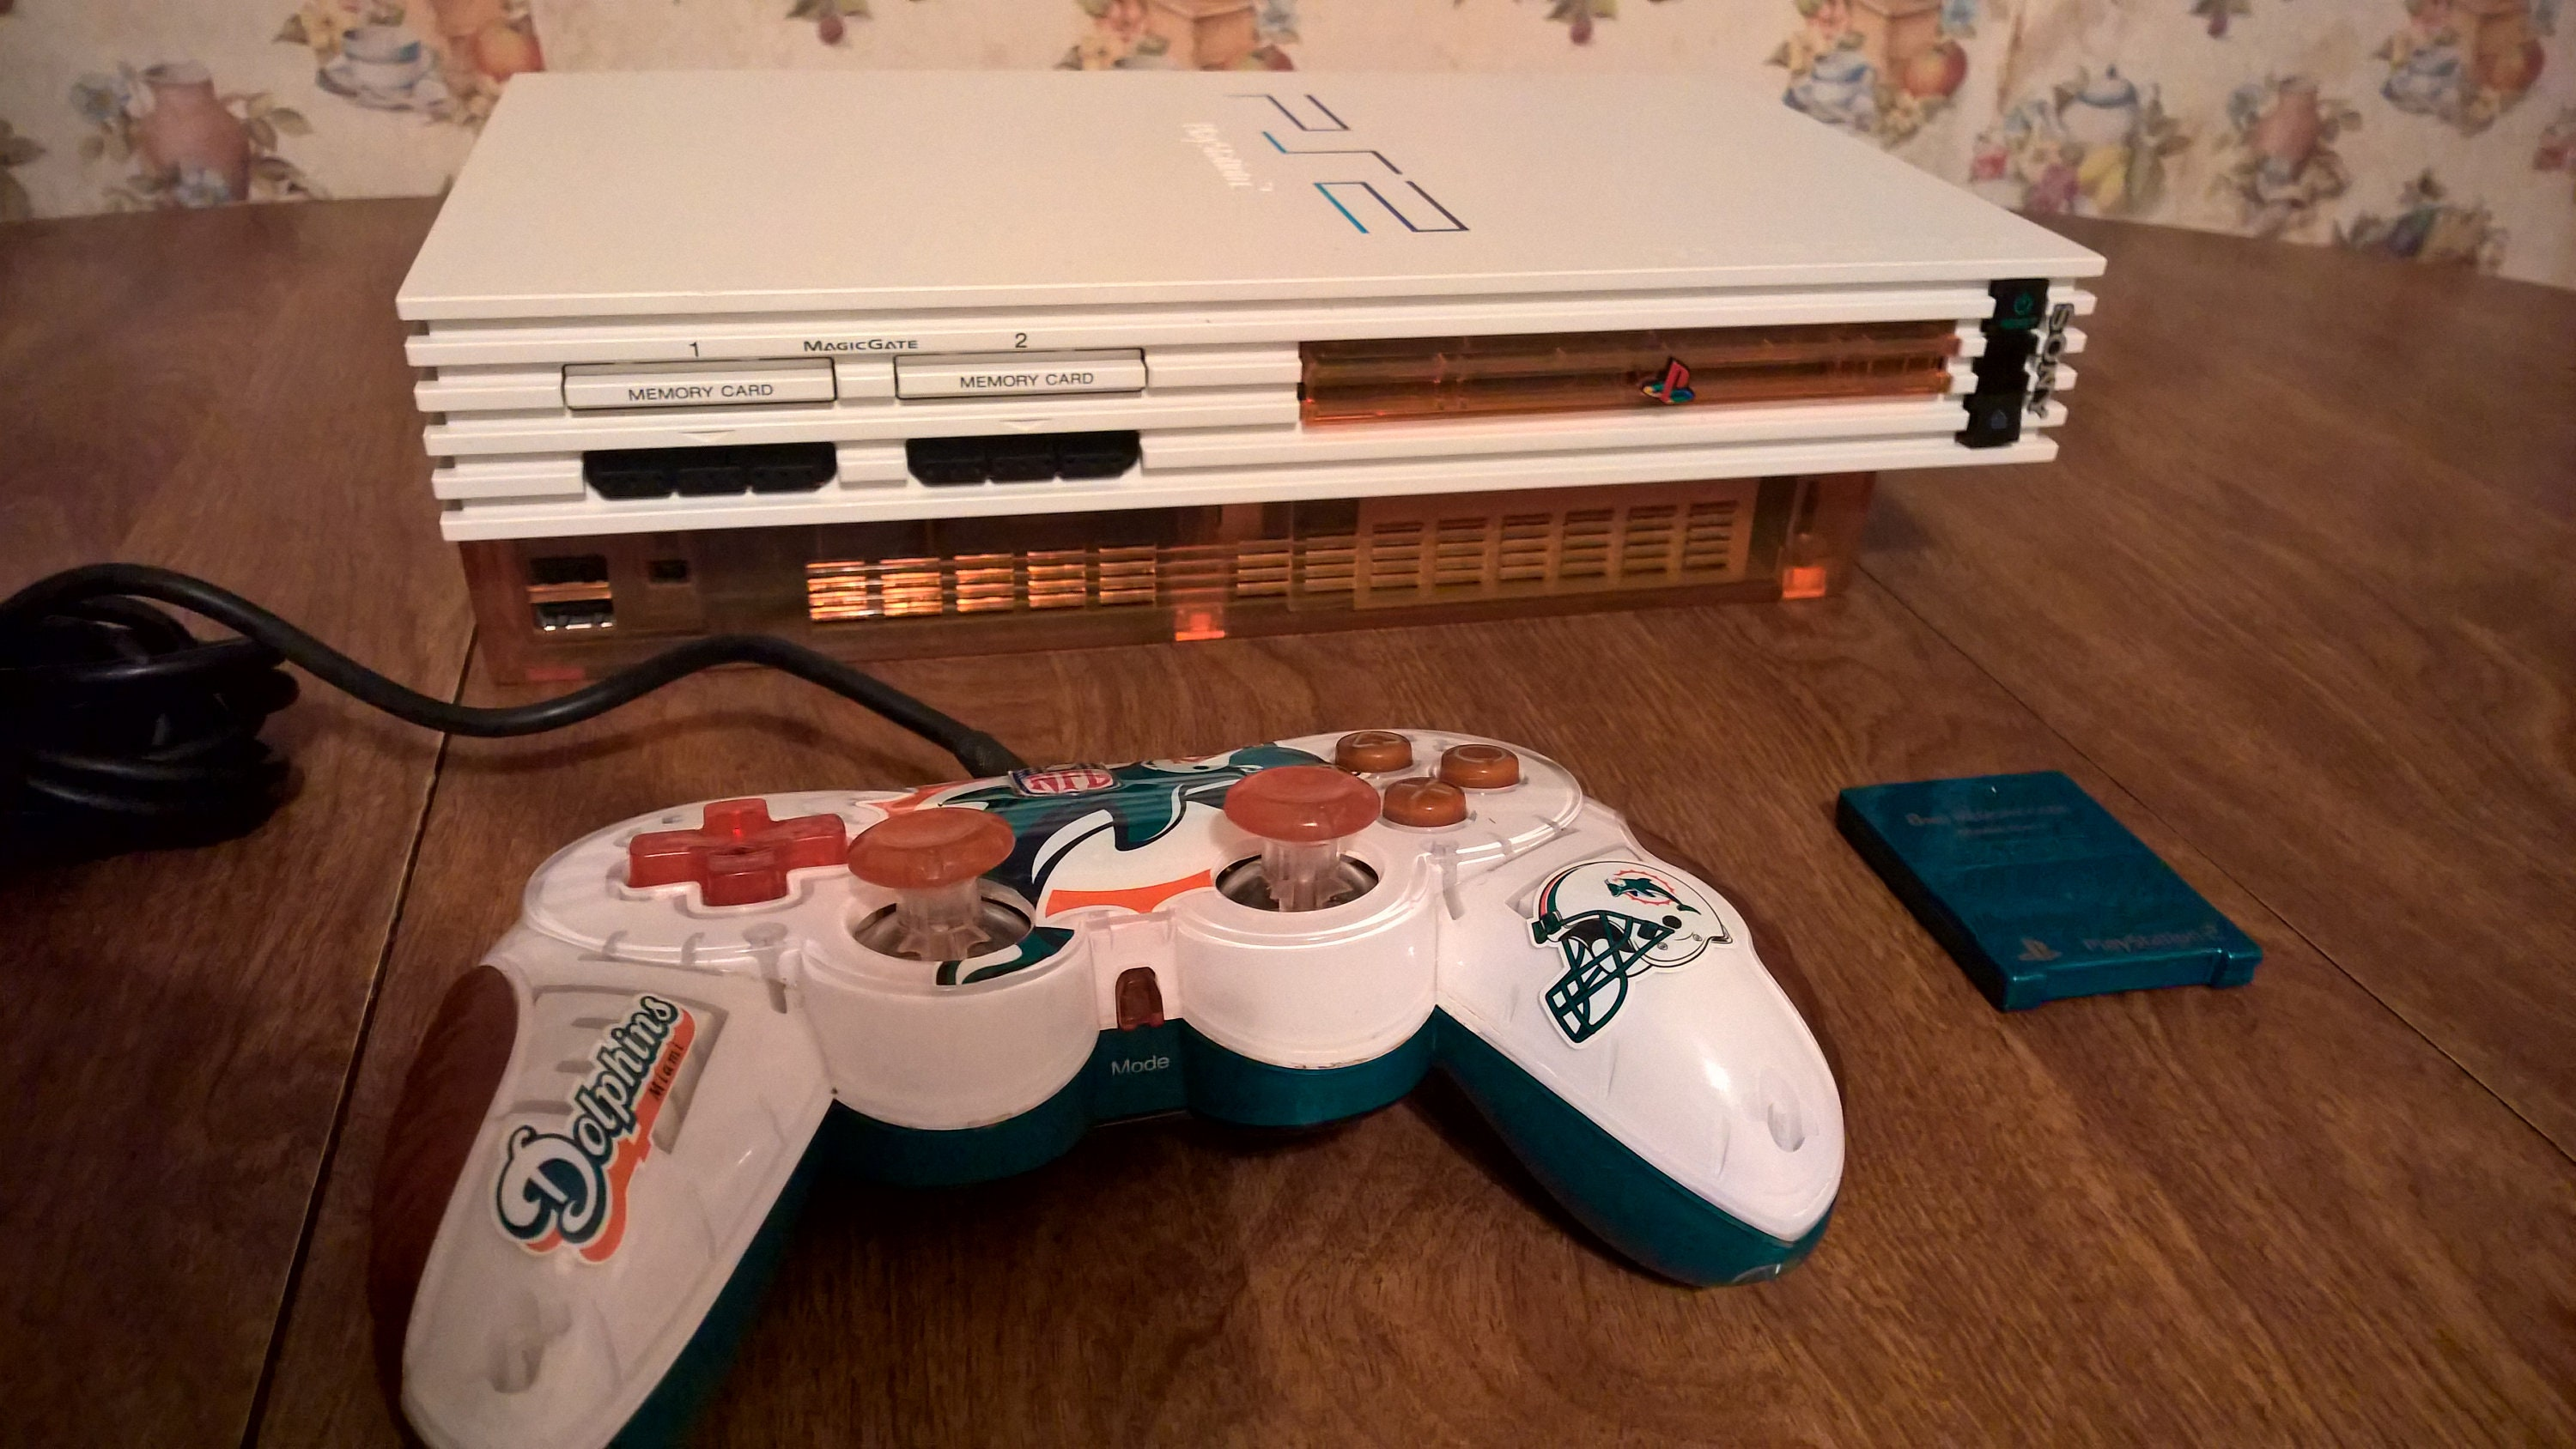 The Real Ultimate modded PS2 1,101 PS2 Games, The complete PS1 Game library  Plus 23 Retro Emulators: NFL Miami Dolphins